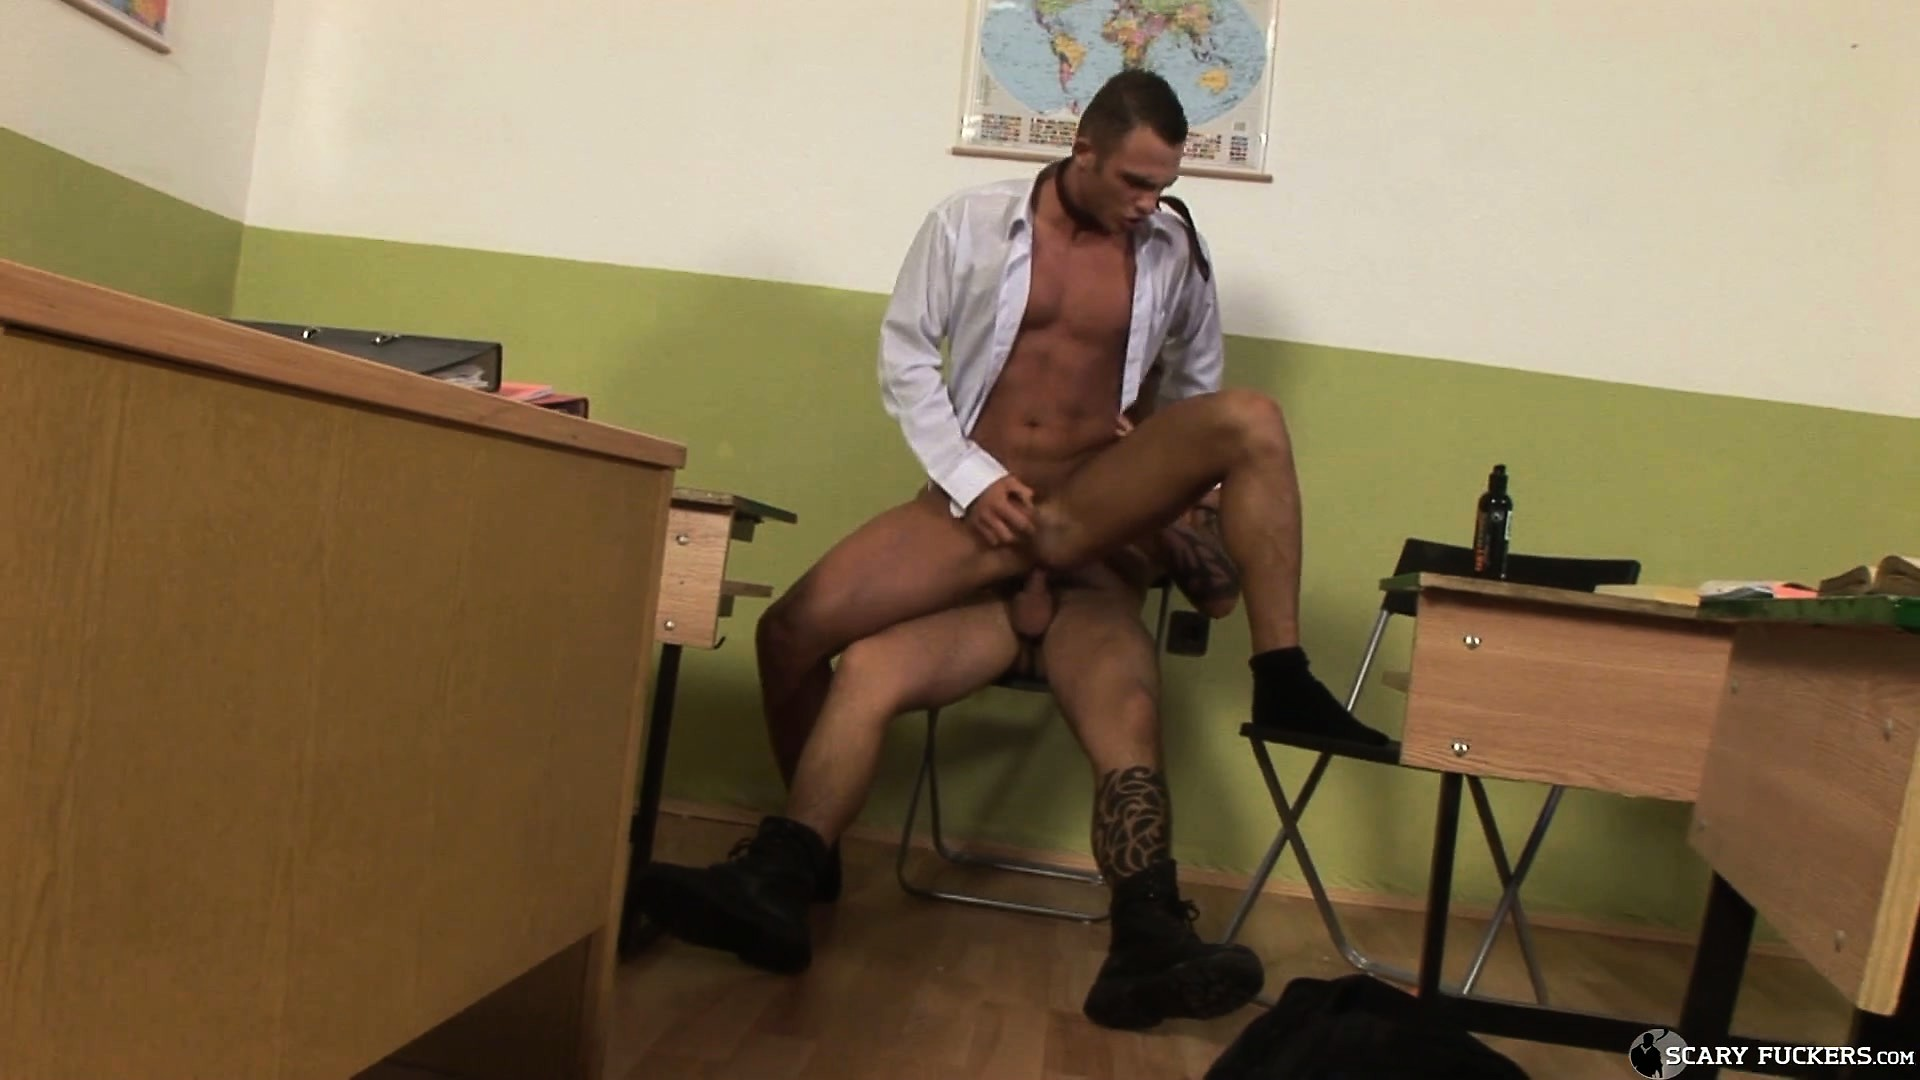 Porno Video of The Class Tug Gives The Teacher's Pet A Taste Of His Hard Cock